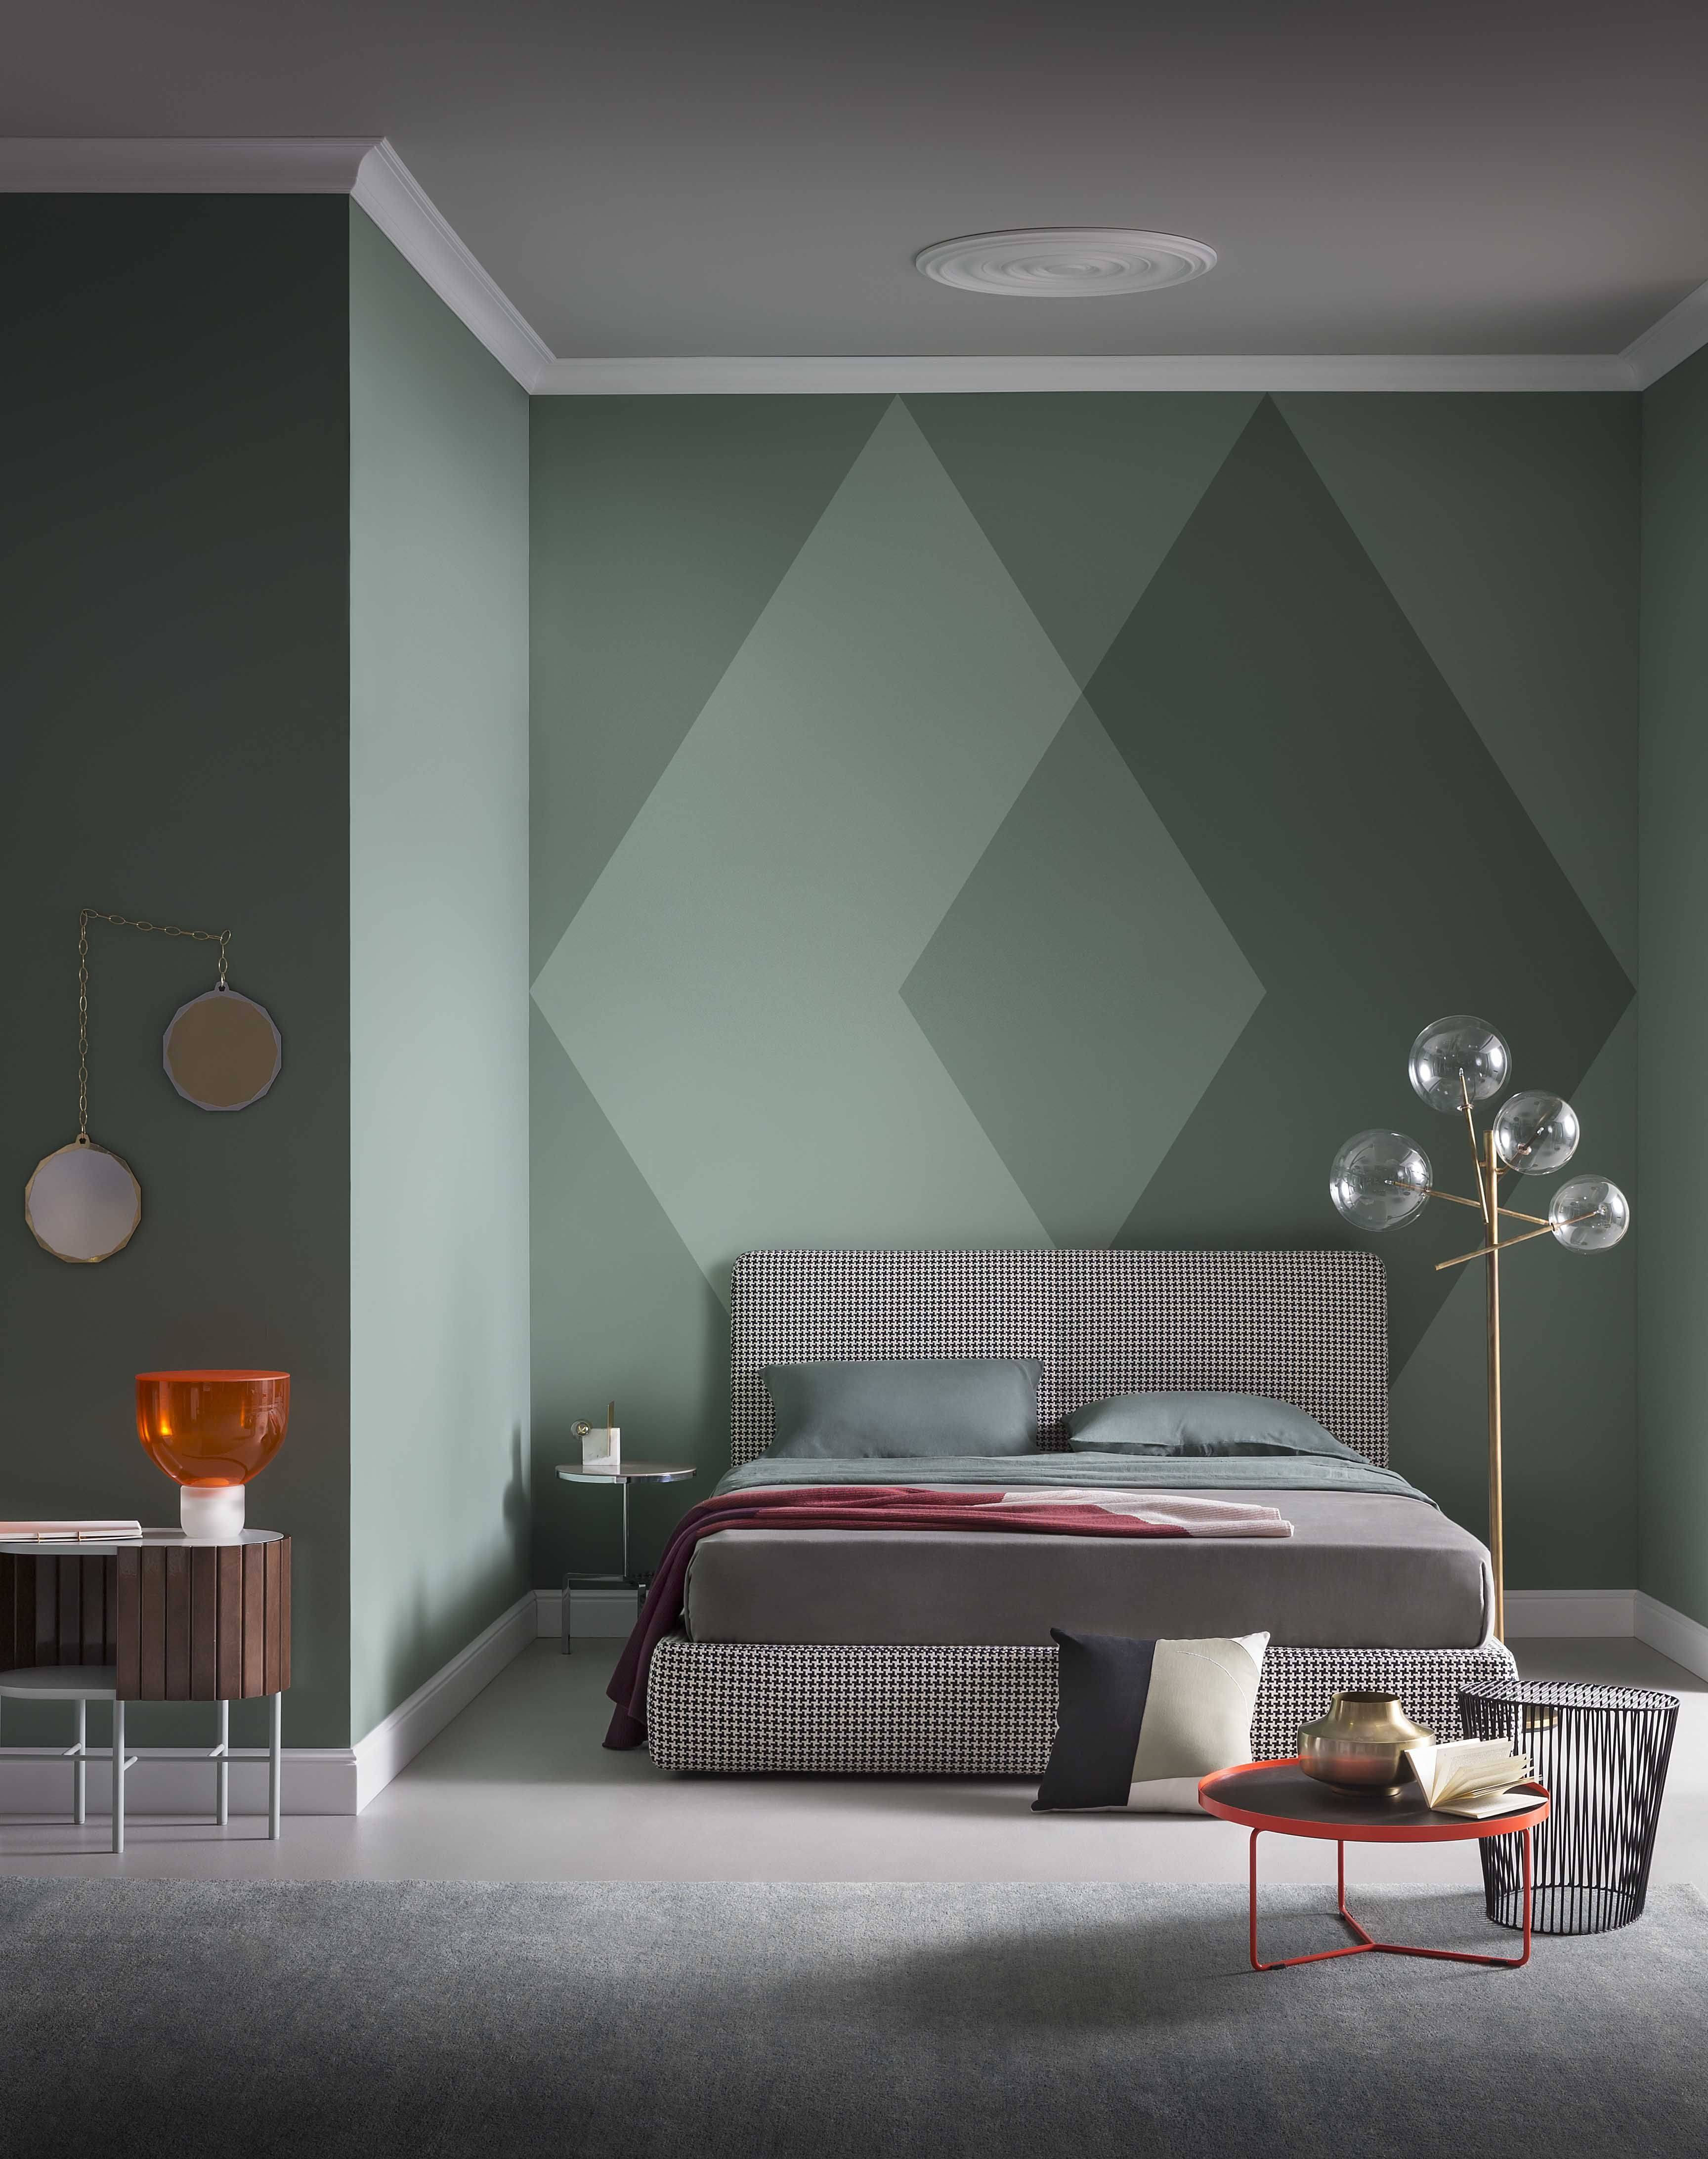 home decor ideas on a bud bedroom color schemes accent walls beautiful 19 awesome accent wall ideas to transform your living room of home decor ideas on a bud bedroom color schemes acc